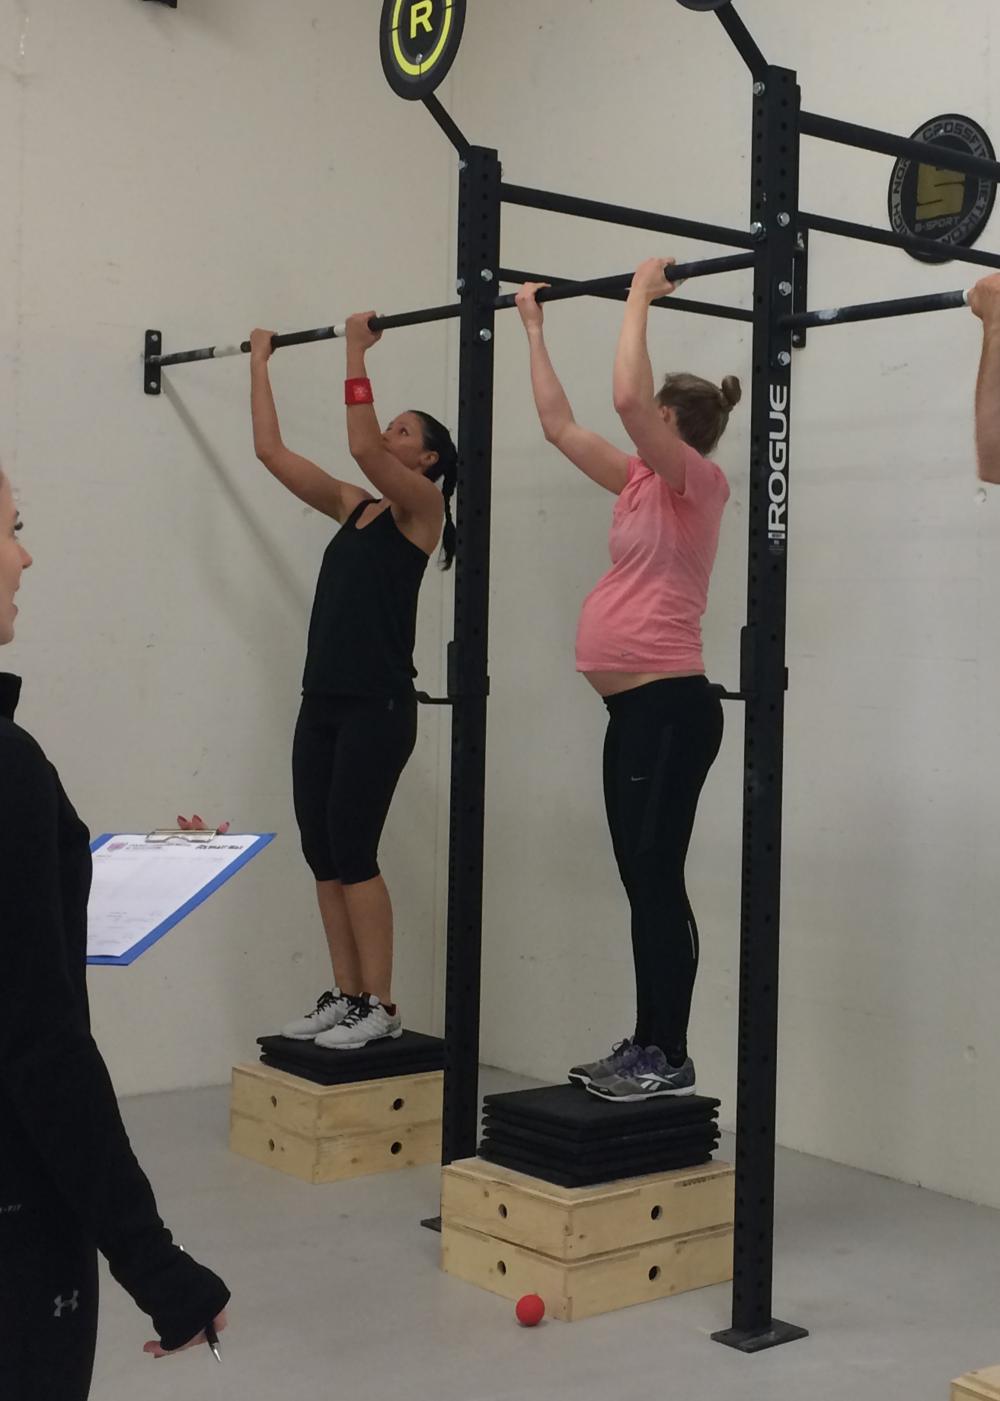 Baba teaching others how to reach their first chest-to-bar pullup.